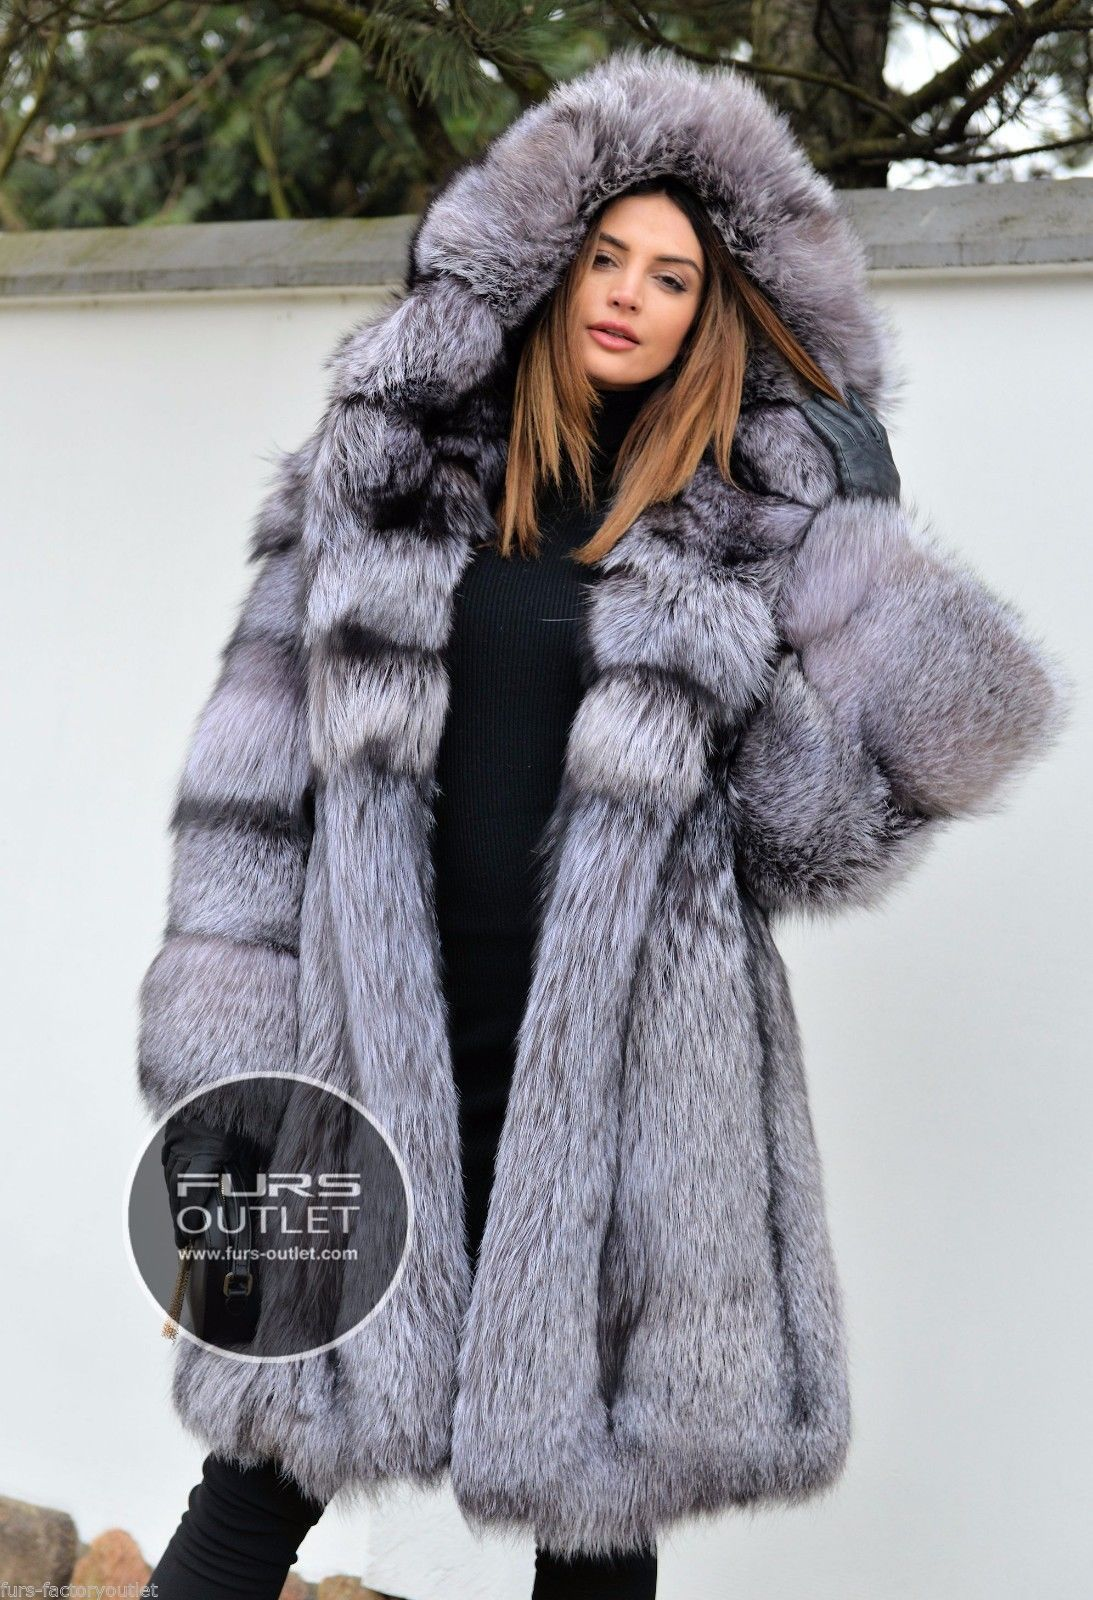 Vi Raptor Ebaydesc Com Ws Ebayisapi Dll Viewitemdescv4 Item 201765813664 Category 63862 Pm 1 Ds 0 T 1496467989060 Fur Coat Fox Fur Coat Leather Coat Jacket